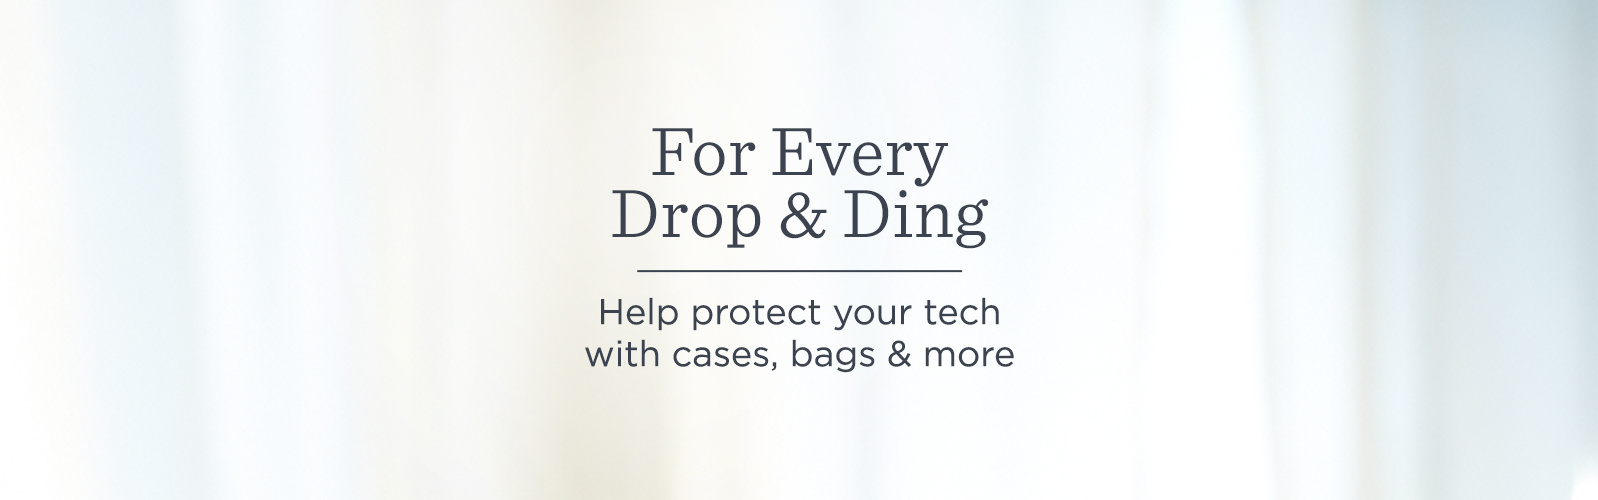 For Every Drop & Ding.  Help protect your tech with cases, bags & more